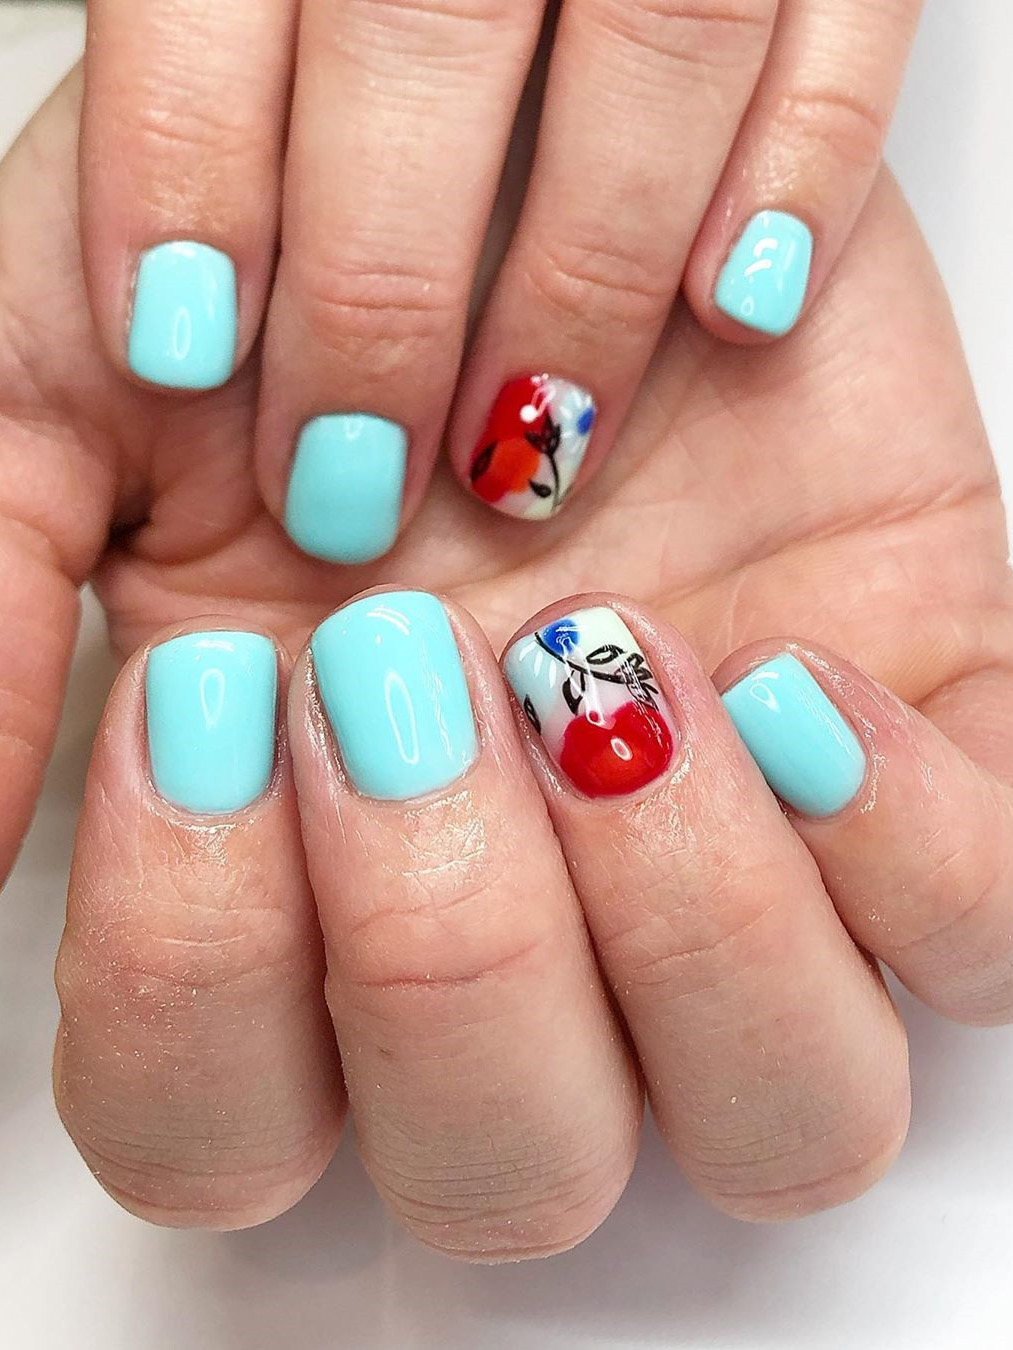 Summer nail ideas: we have put together 50 of the best summer nails. There is something for everyone from light and bright to bold to sparkling glitter. #summernailideas #summernails #nails2020trends